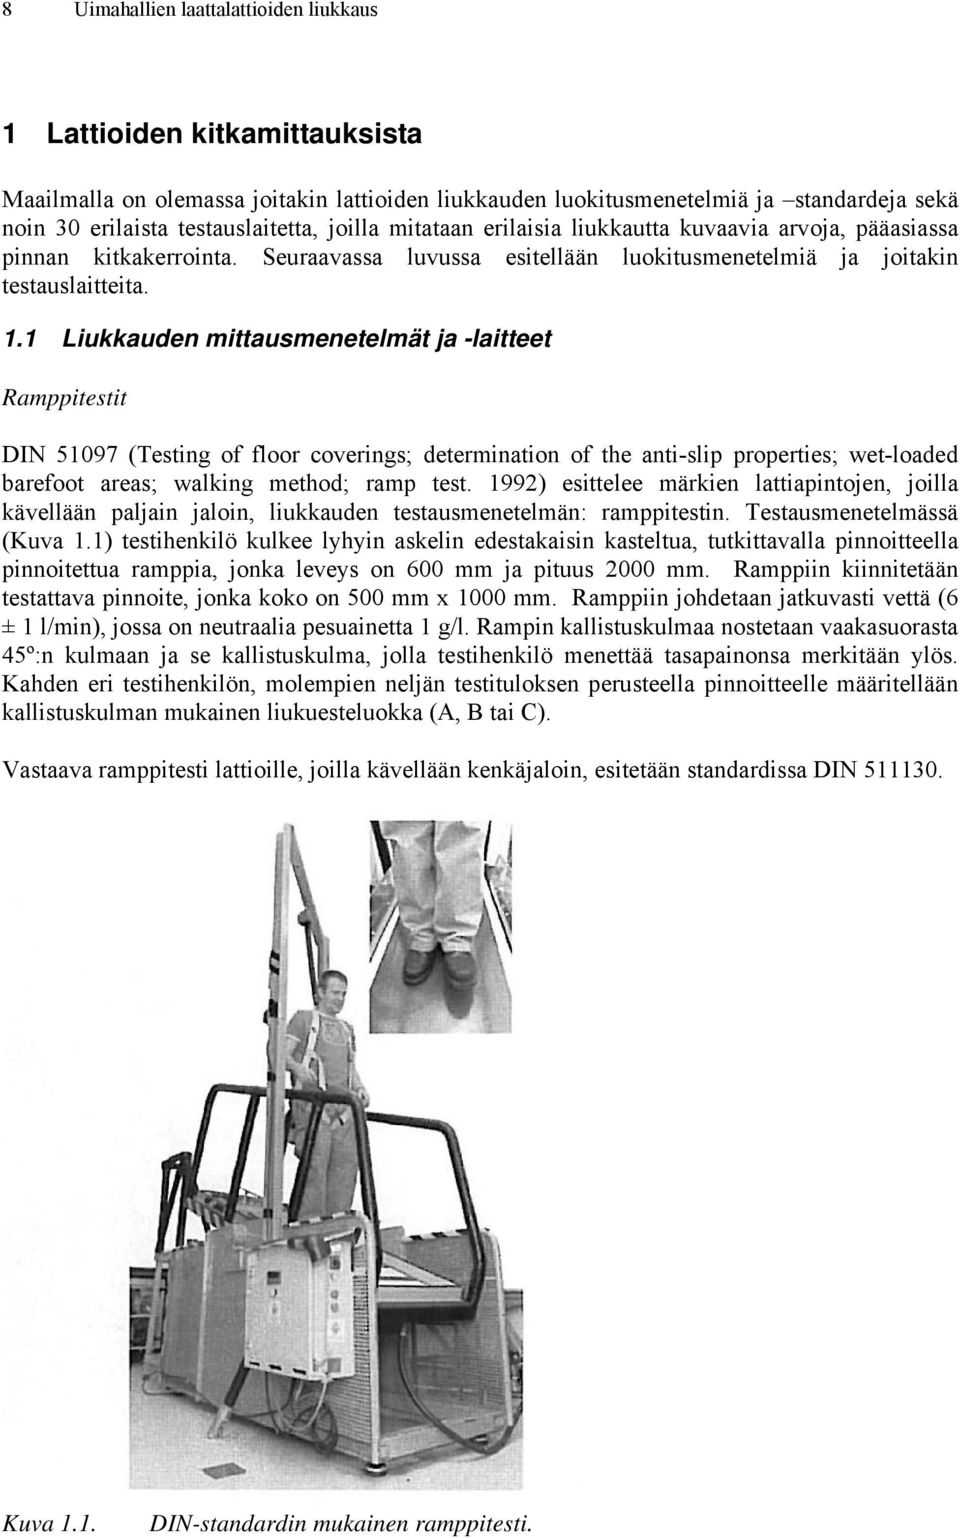 1 Liukkauden mittausmenetelmät ja -laitteet Ramppitestit DIN 5197 (Testing of floor coverings; determination of the anti-slip properties; wet-loaded barefoot areas; walking method; ramp test.